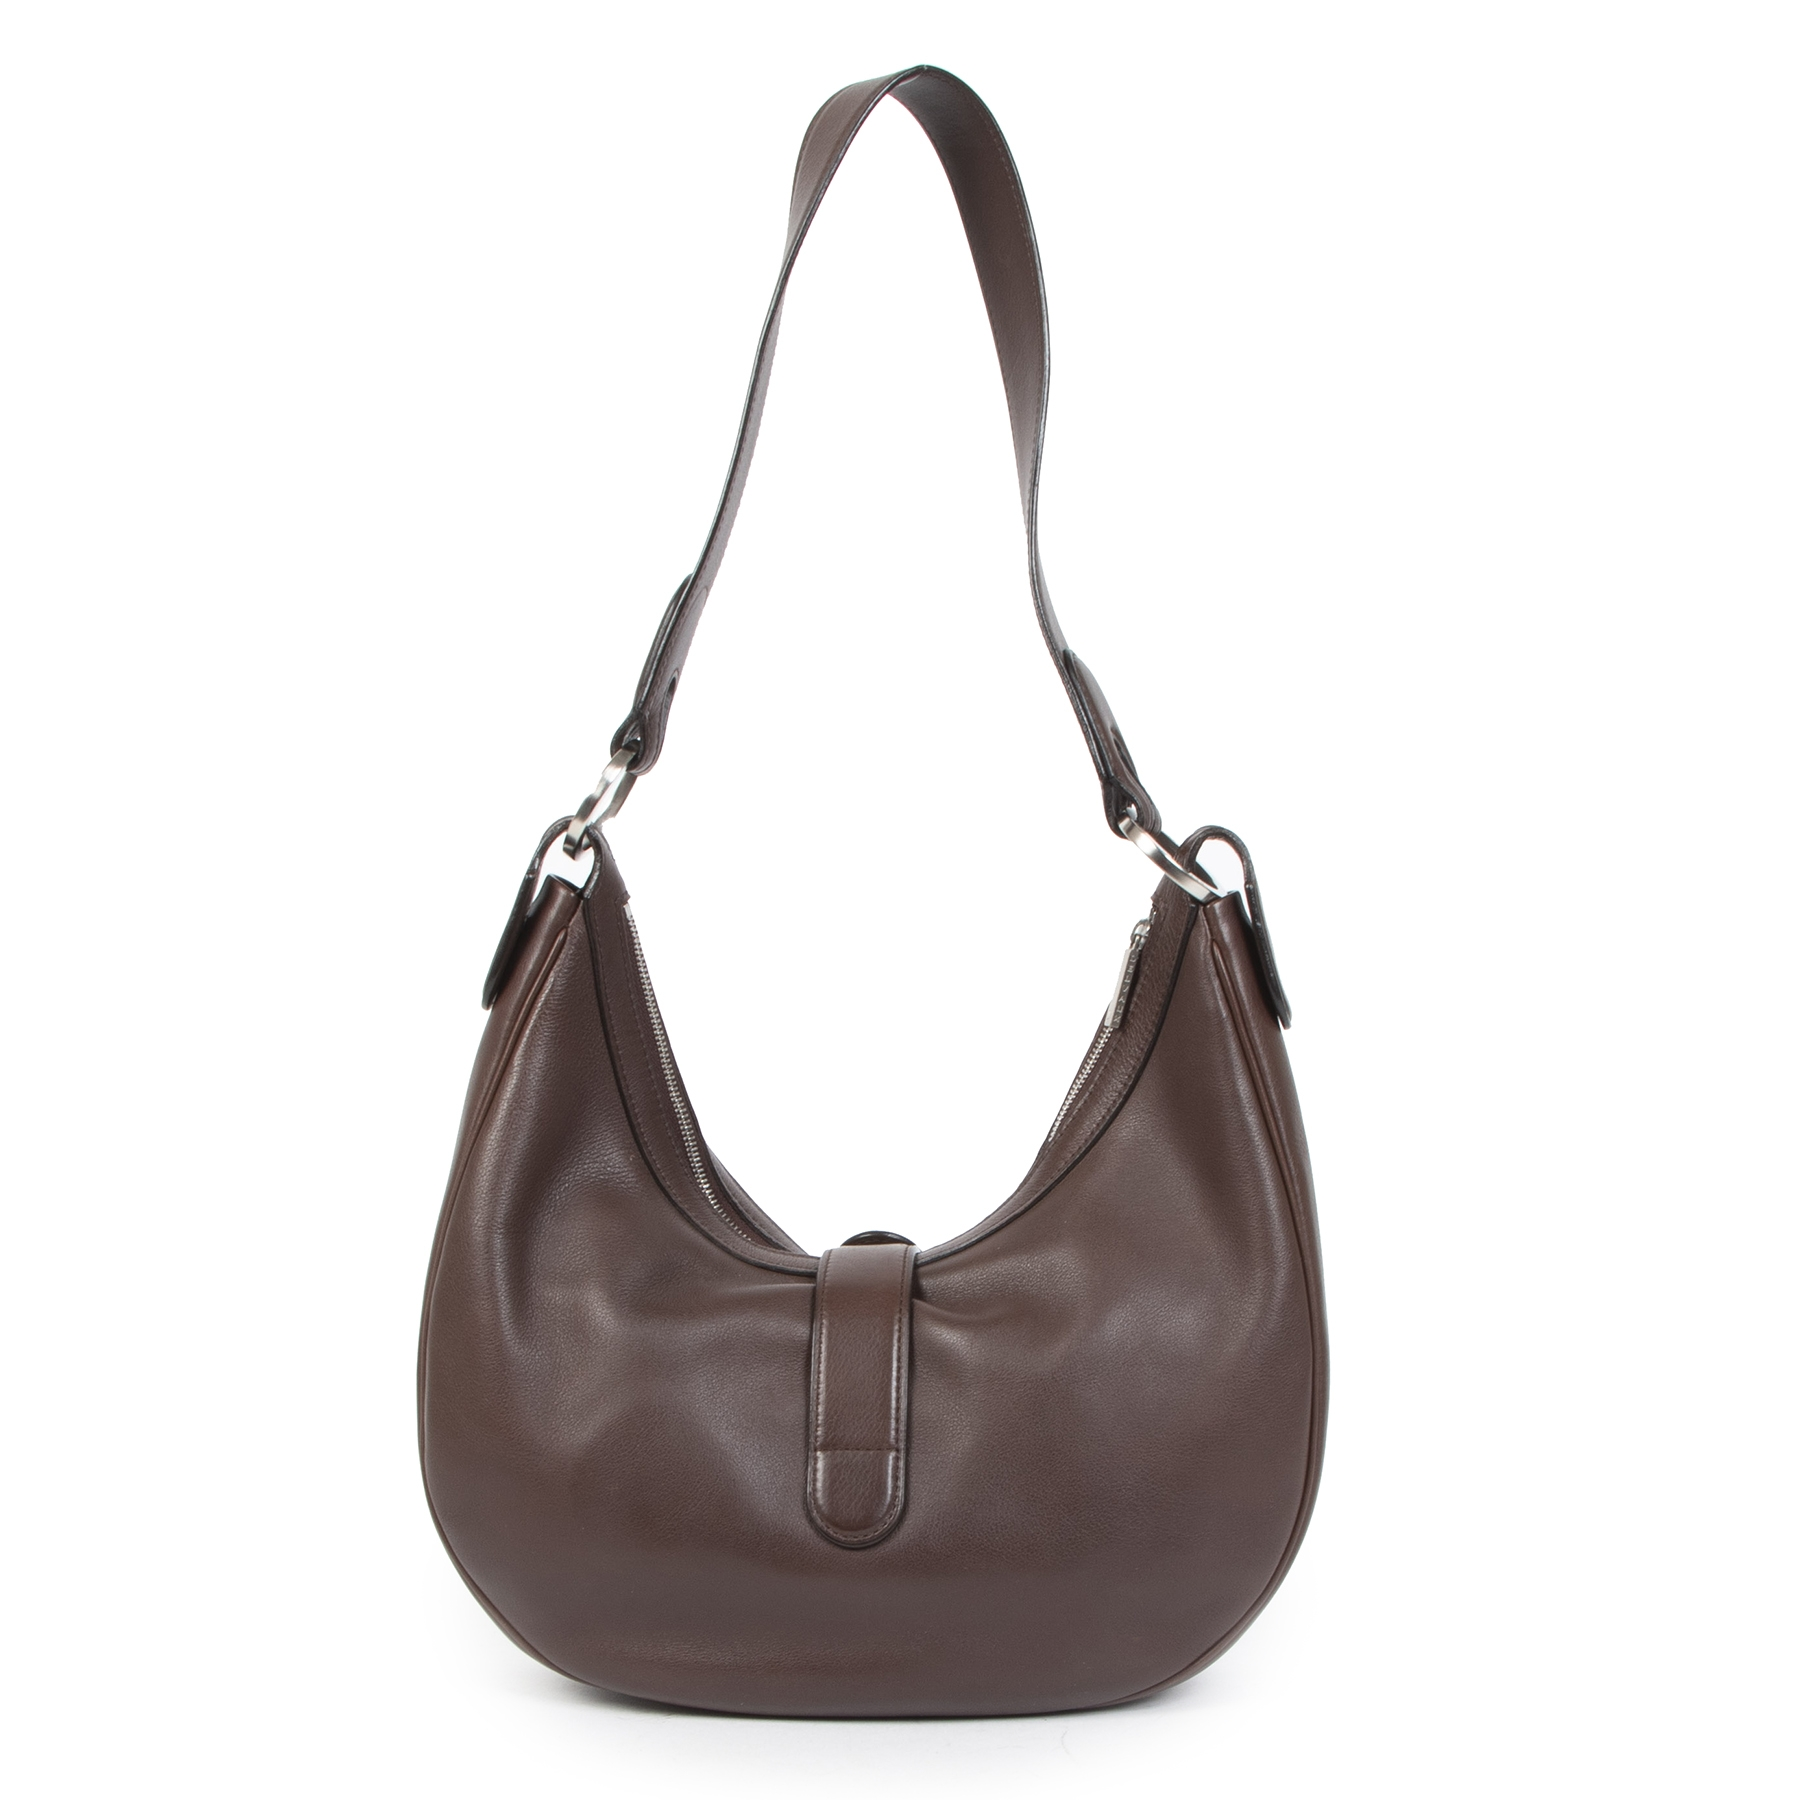 Authentic secondhand Delvaux Chocolate Brown Leather Camille Bag designer bags designer brands luxury vintage webshop safe secure online shopping worldwide shipping